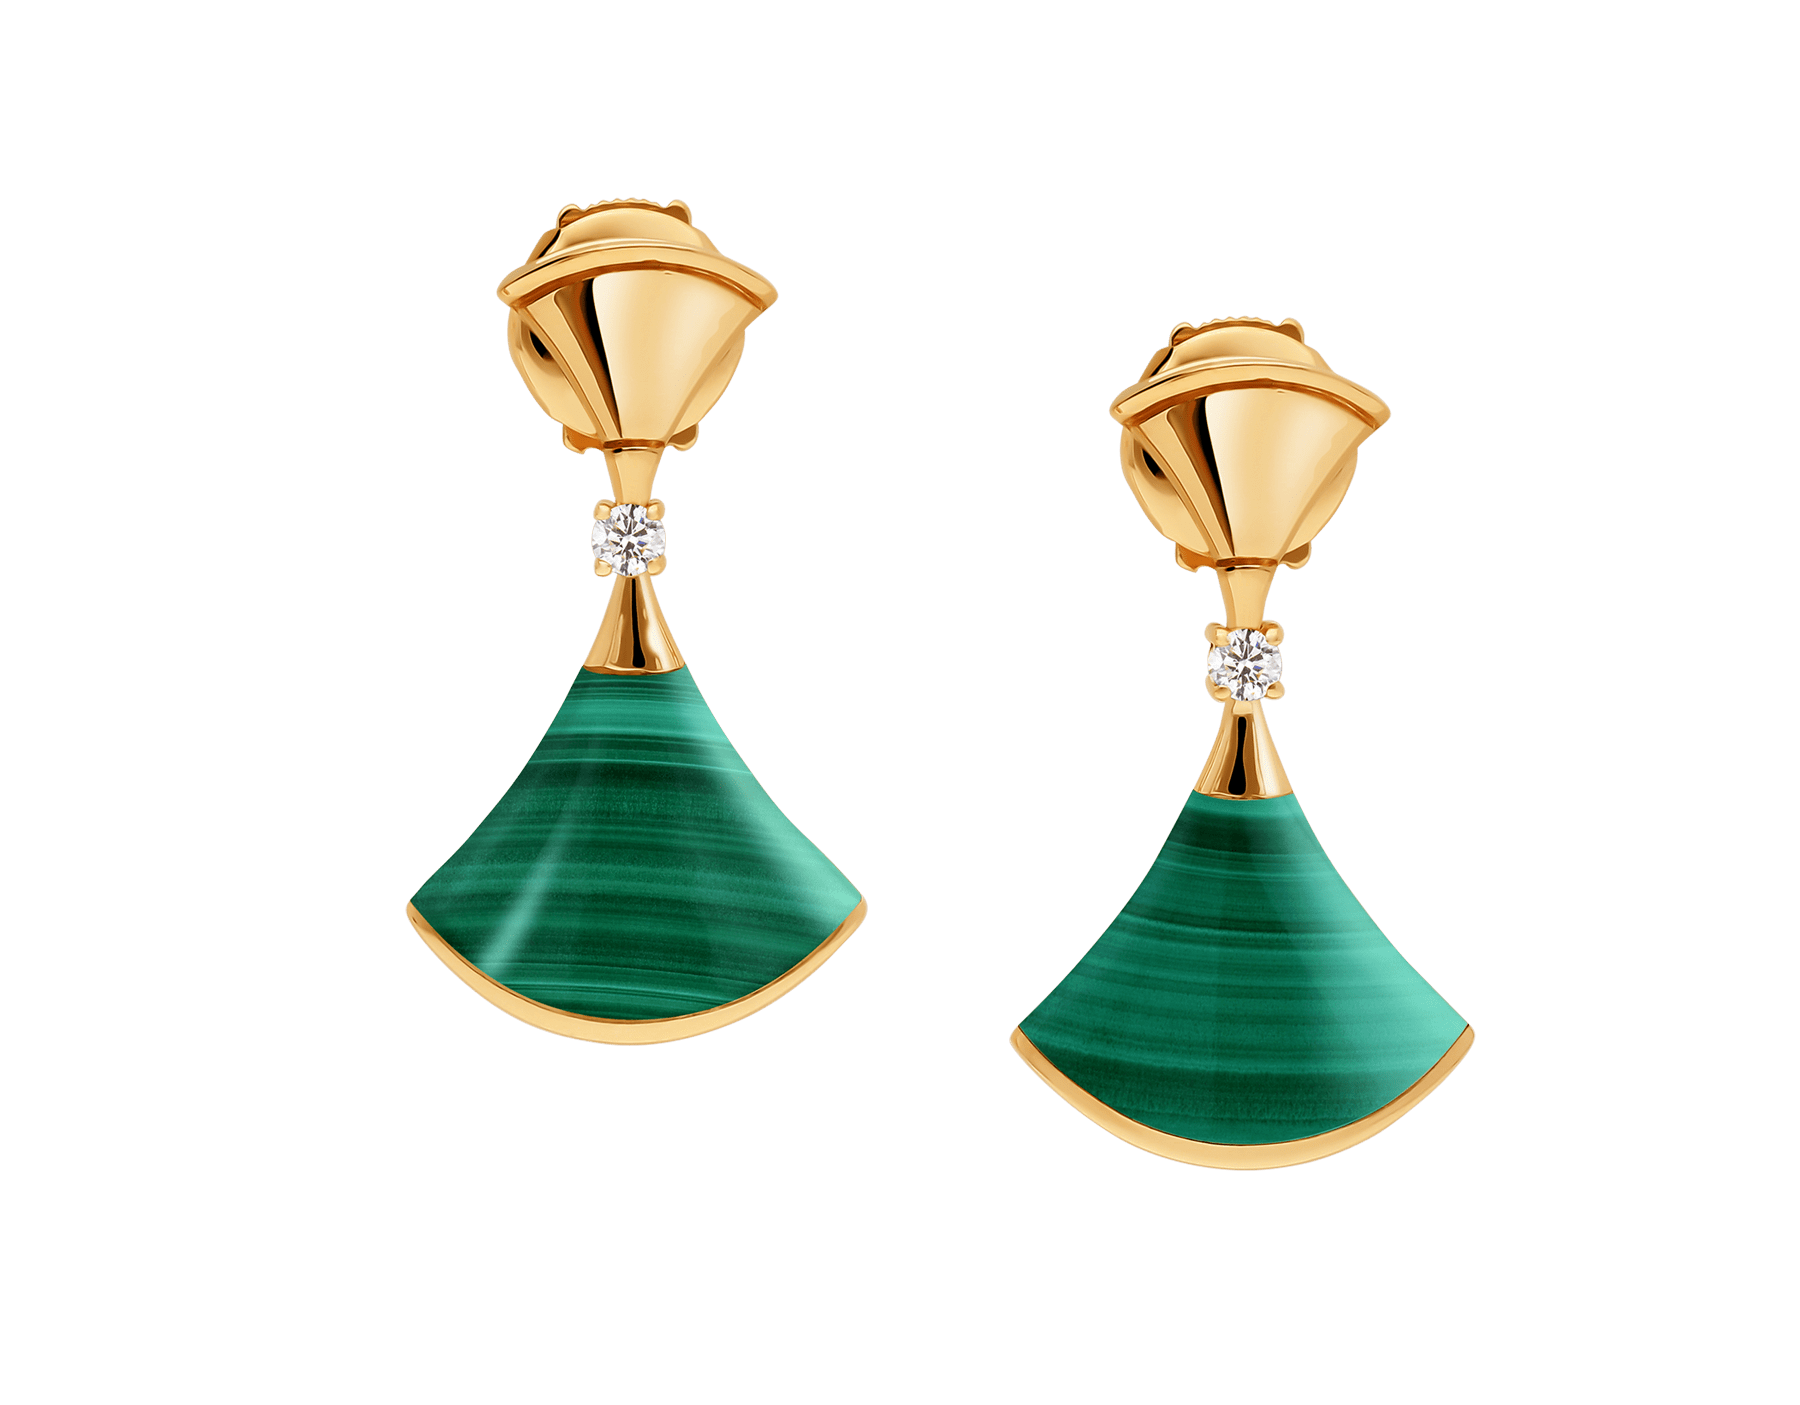 DIVAS' DREAM 18 kt rose gold earrings set with malachite elements and round brilliant-cut diamonds (0.07) 358128 image 1